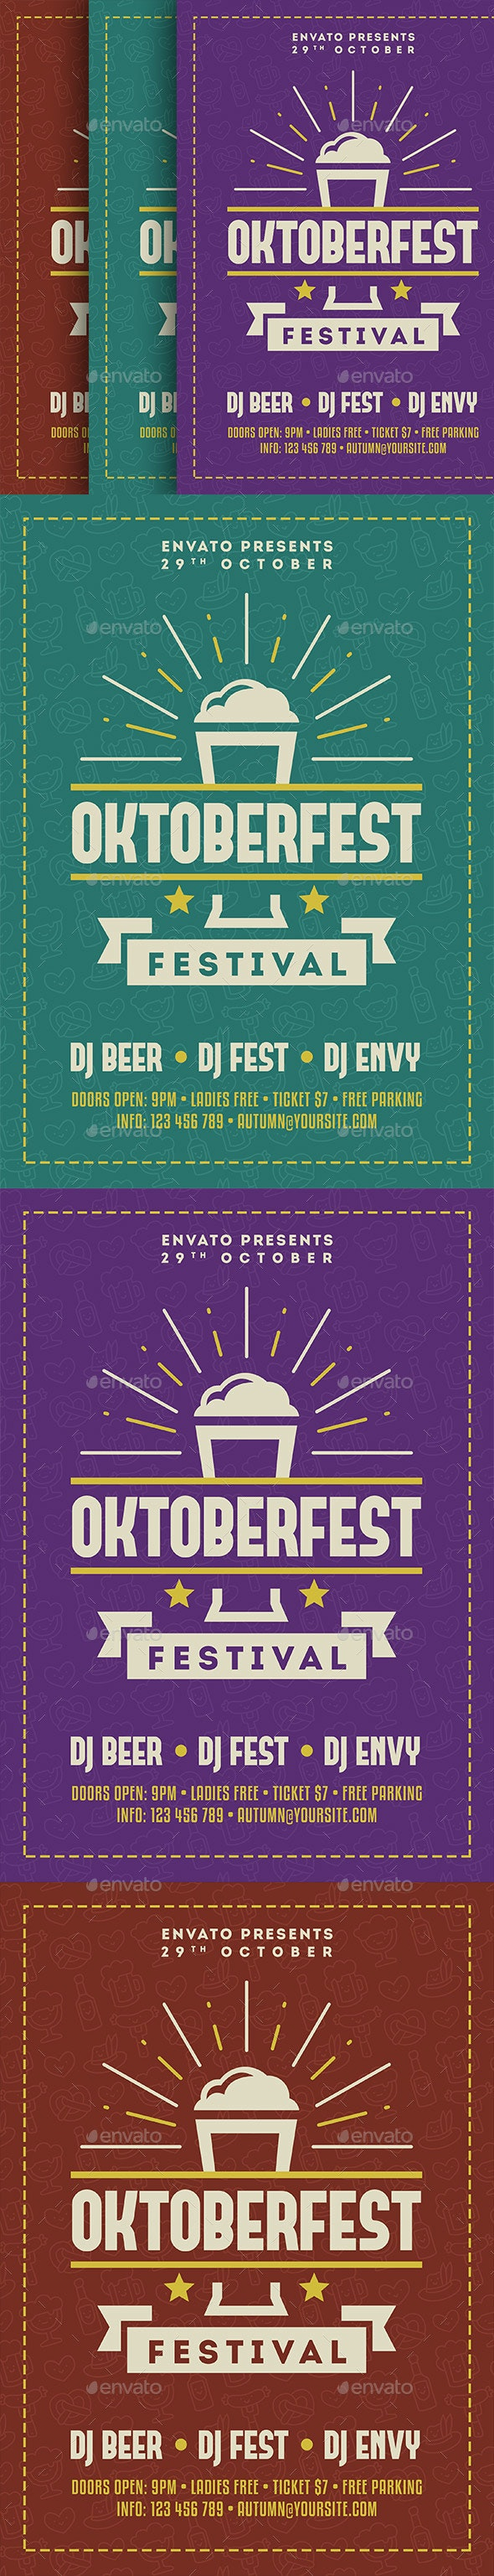 Oktoberfest Flyer - Holidays Events